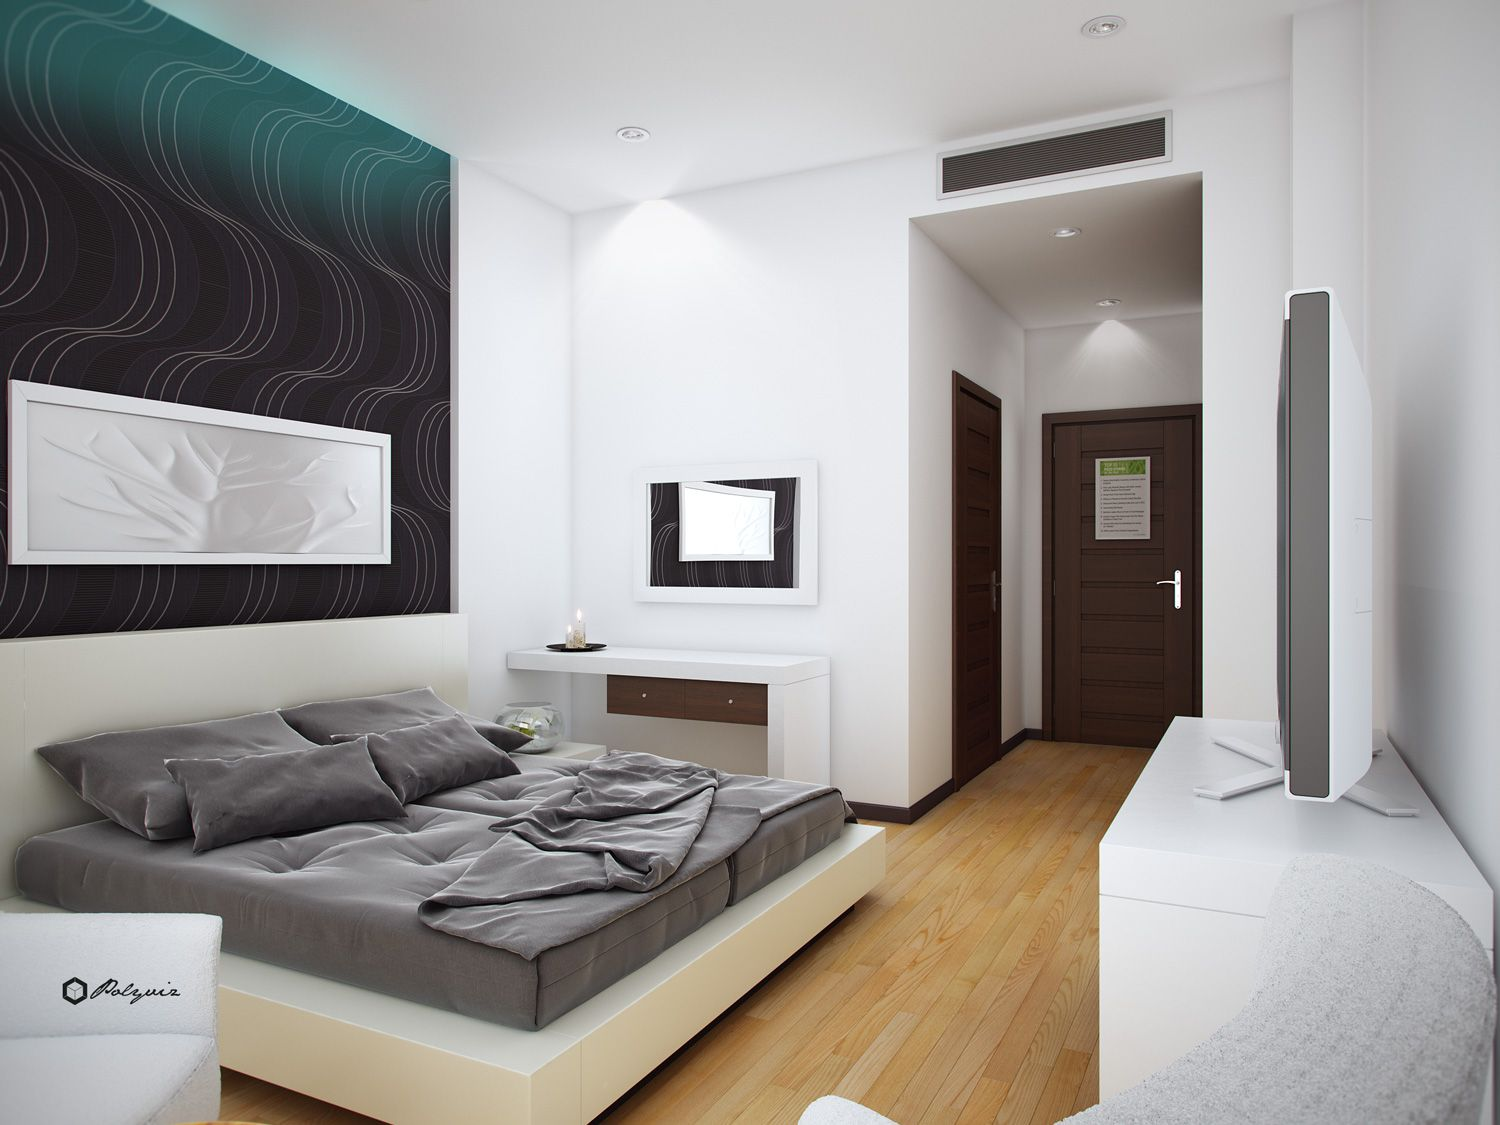 Modern hotel room design google search room design for Minimalist hotel room design